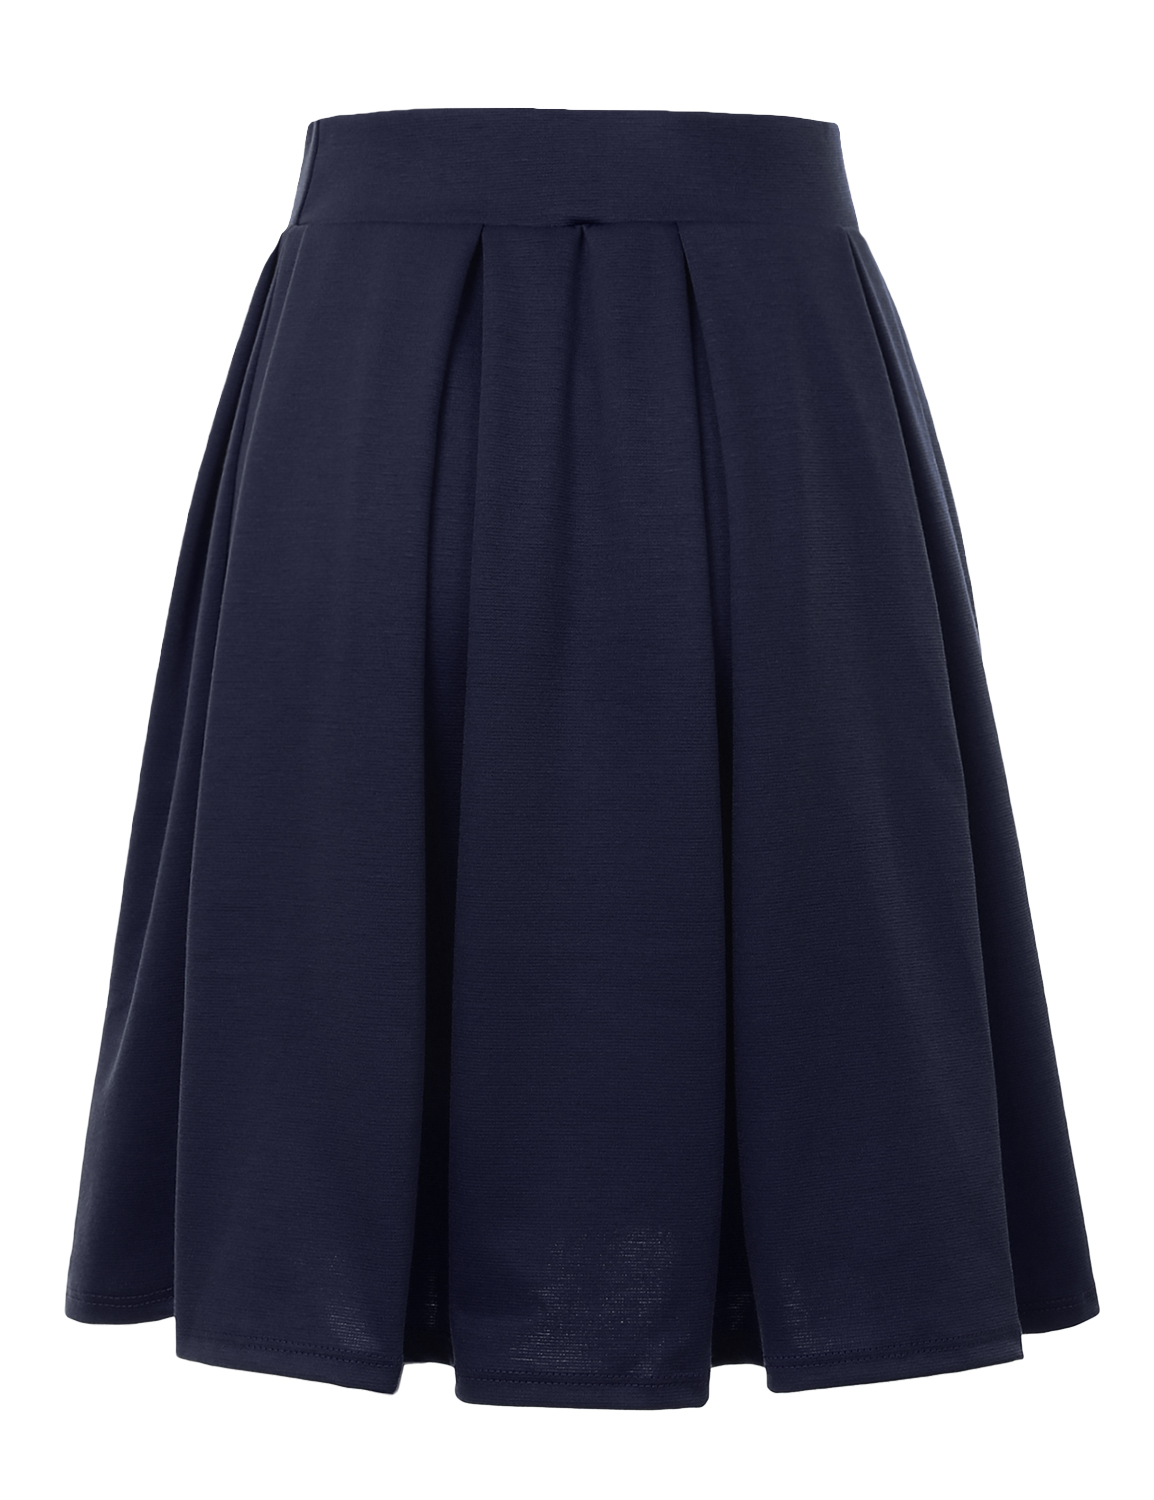 Doublju-Elastic-Waist-Flare-Pleated-Skater-Midi-Skirt-for-Women-with-Plus-Size thumbnail 15